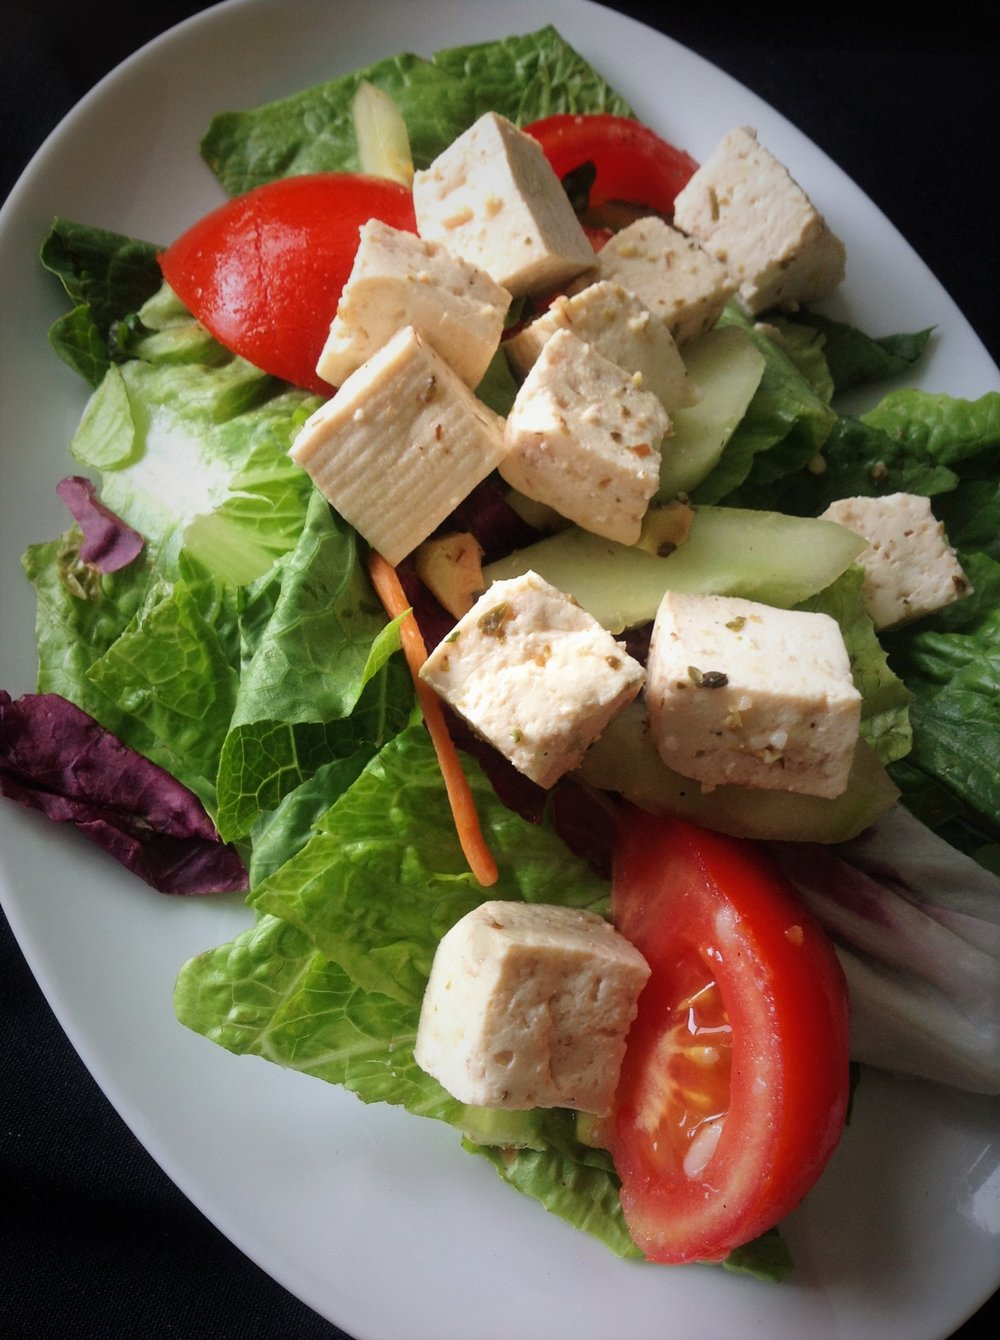 Vegan Tofu Feta - Healthy, Plant-Based, Dairy-Free Cheese Substitute Recipe